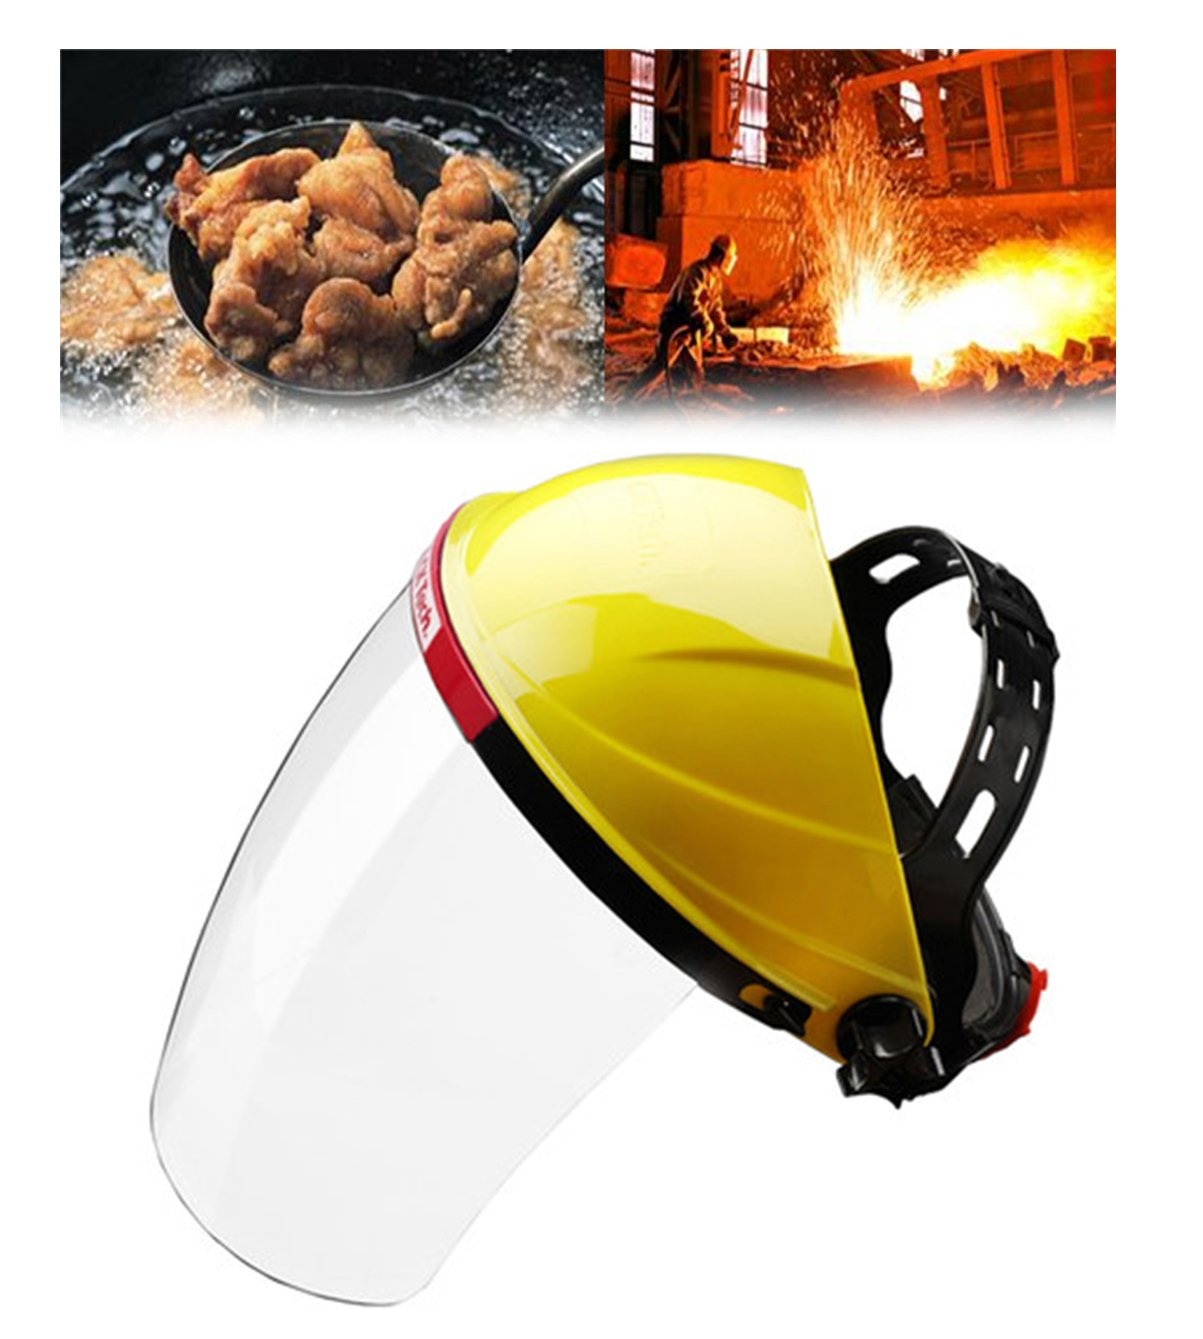 Ideal For Gardening Cooking Oil Splashing Adjustable Clear Face Mask Shield Visor Safety Workwear Eye Protection